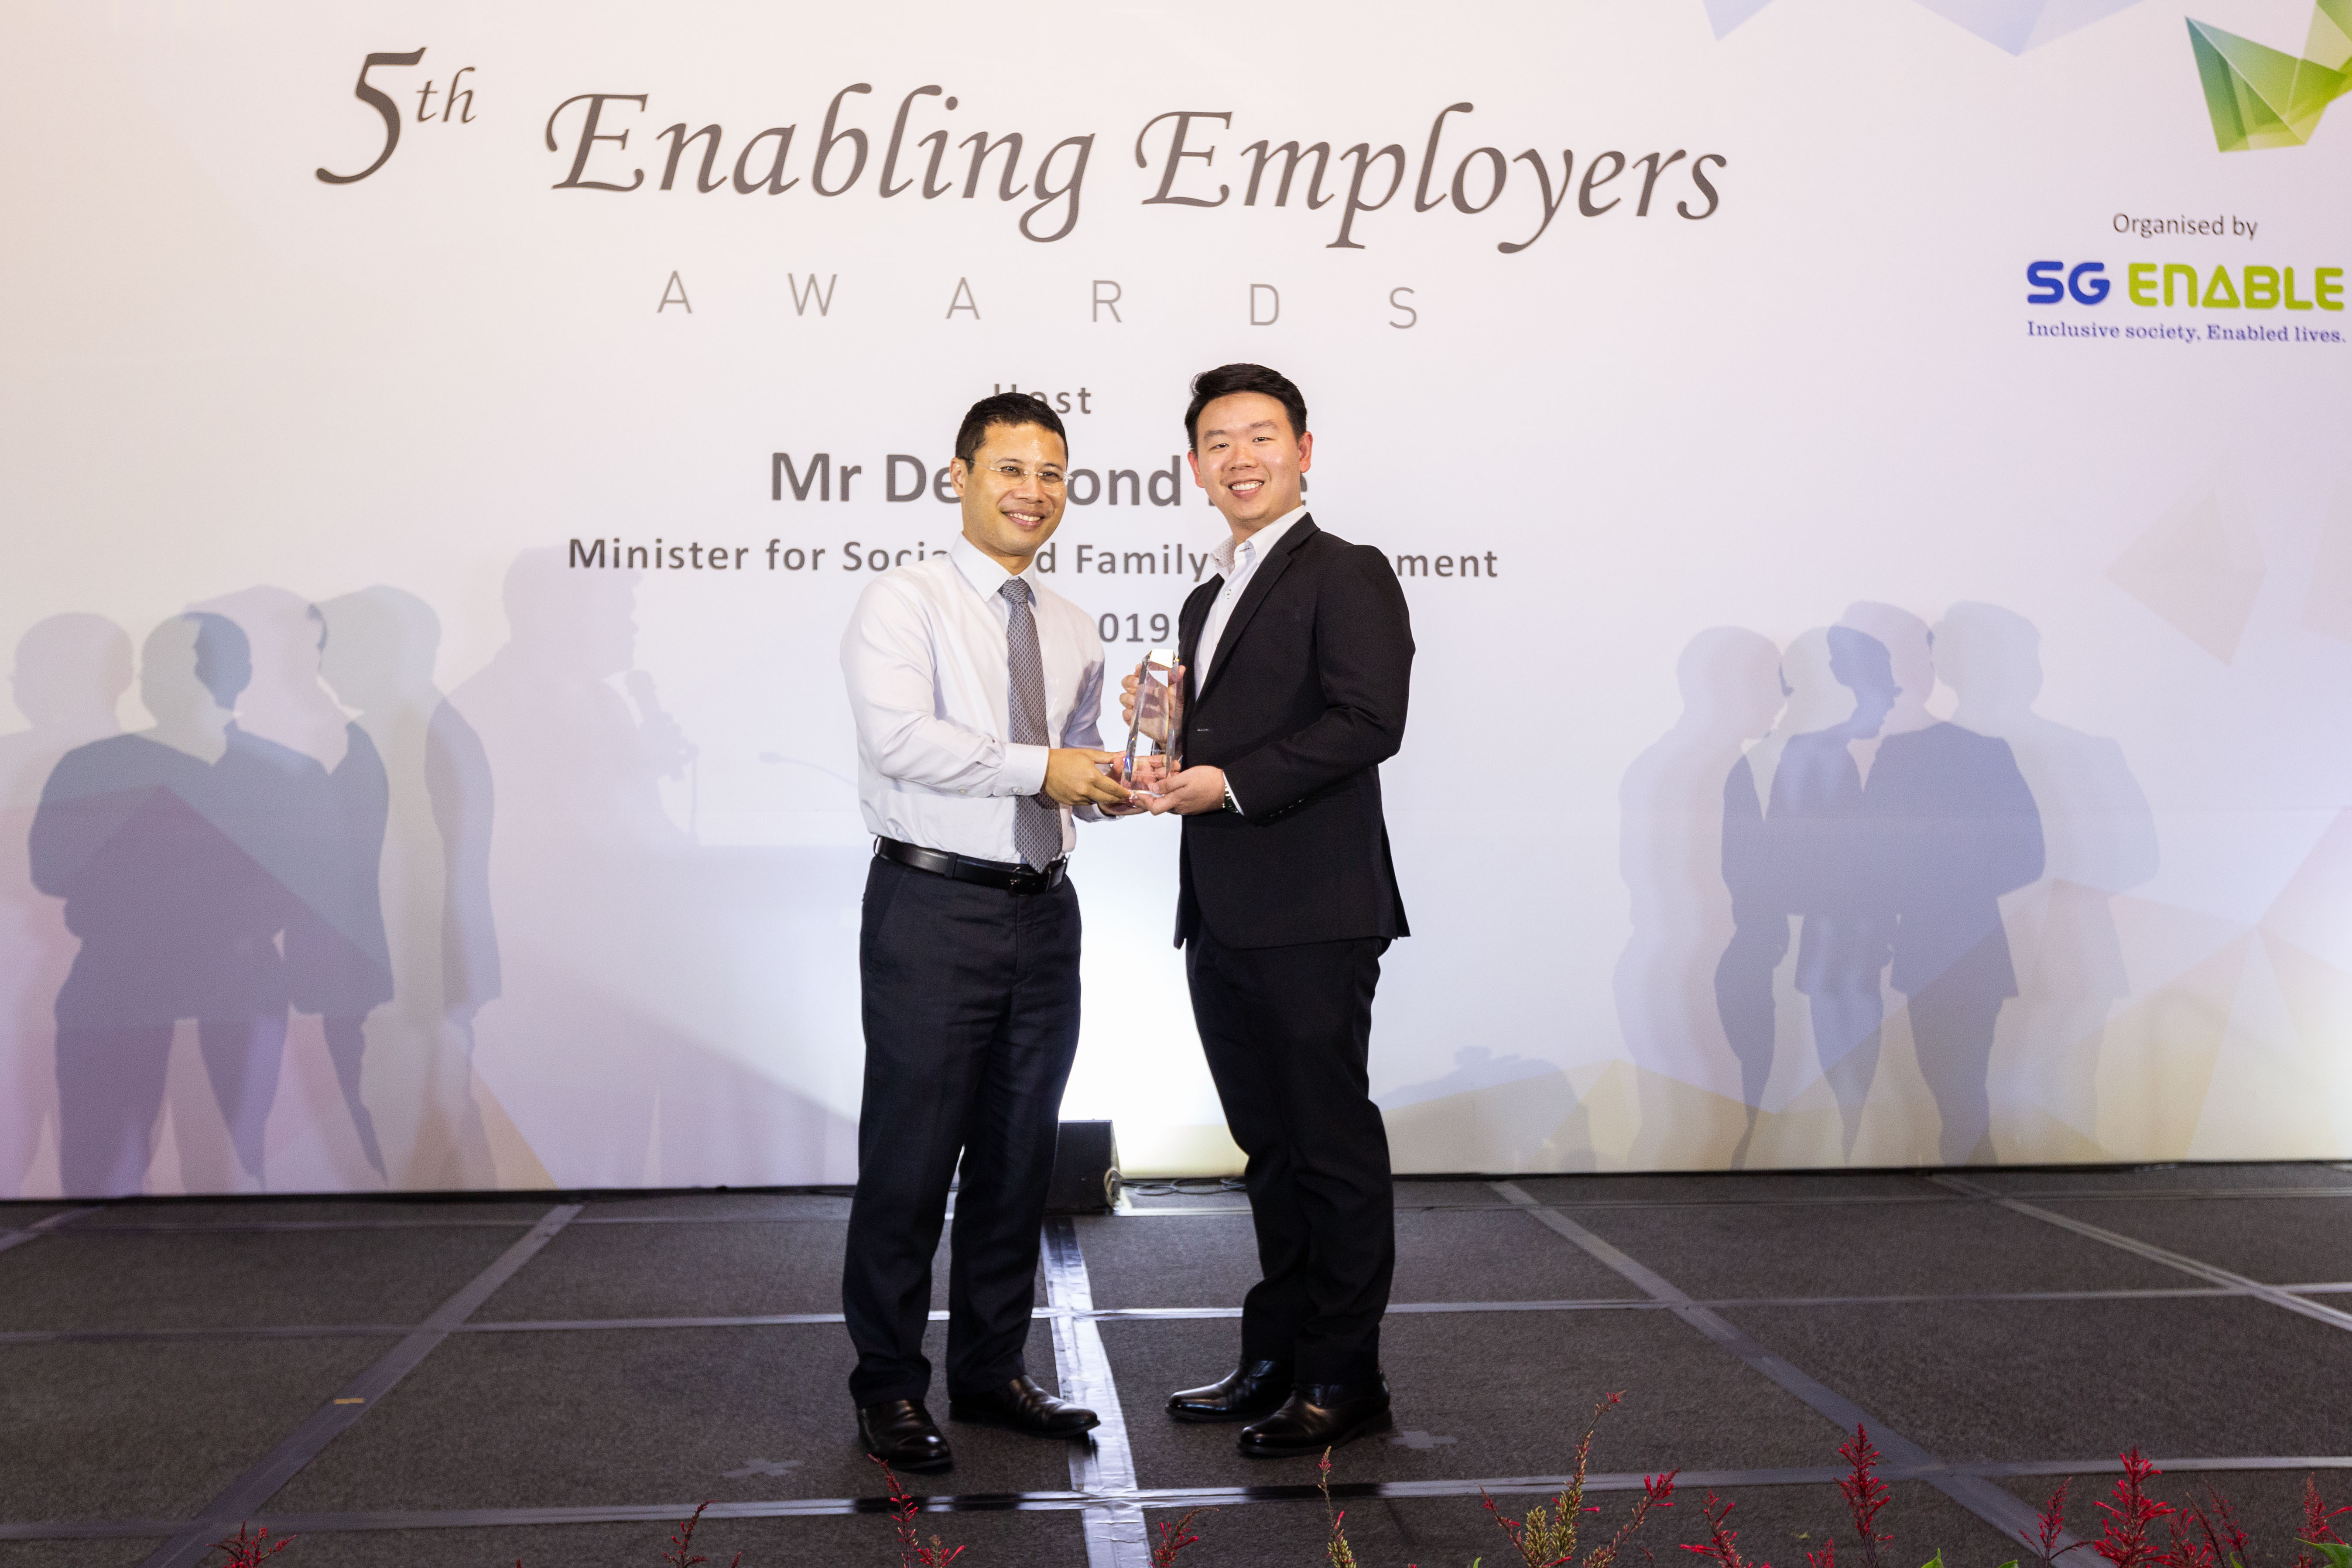 Benjamin (right) receiving the Enabling Champion Award at the 5th Enabling Employers Awards from Minister for Social and Family Development Desmond Lee.